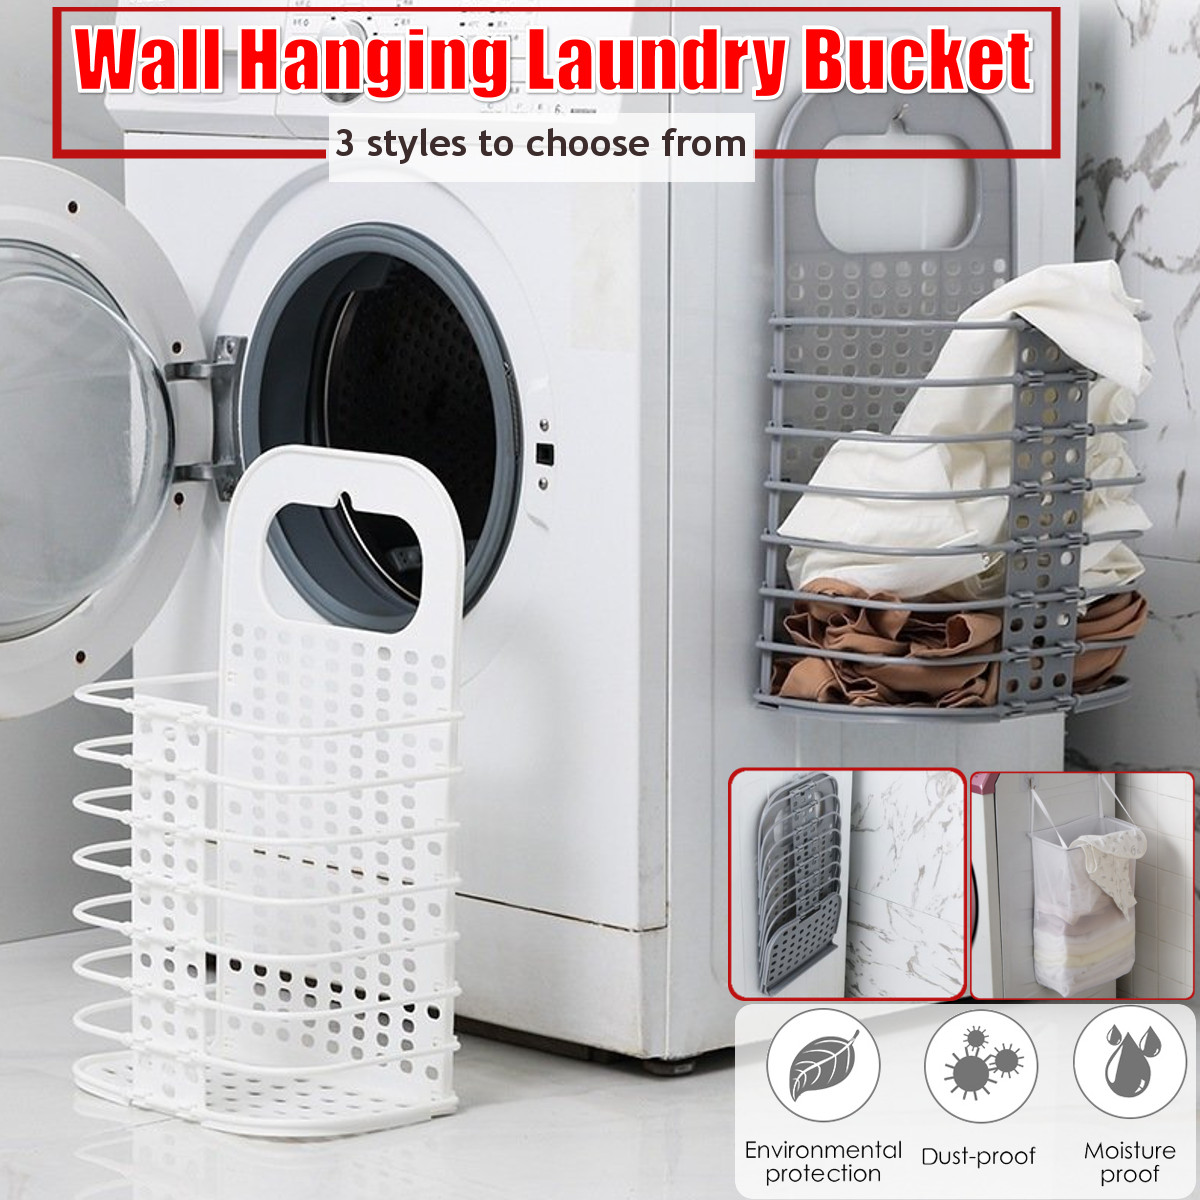 2pcs/set 3 Styles Wall Hanging Laundry Organizer Basket Dirty Laundry Hamper Collapsible Home Laundry Basket Household Supplies